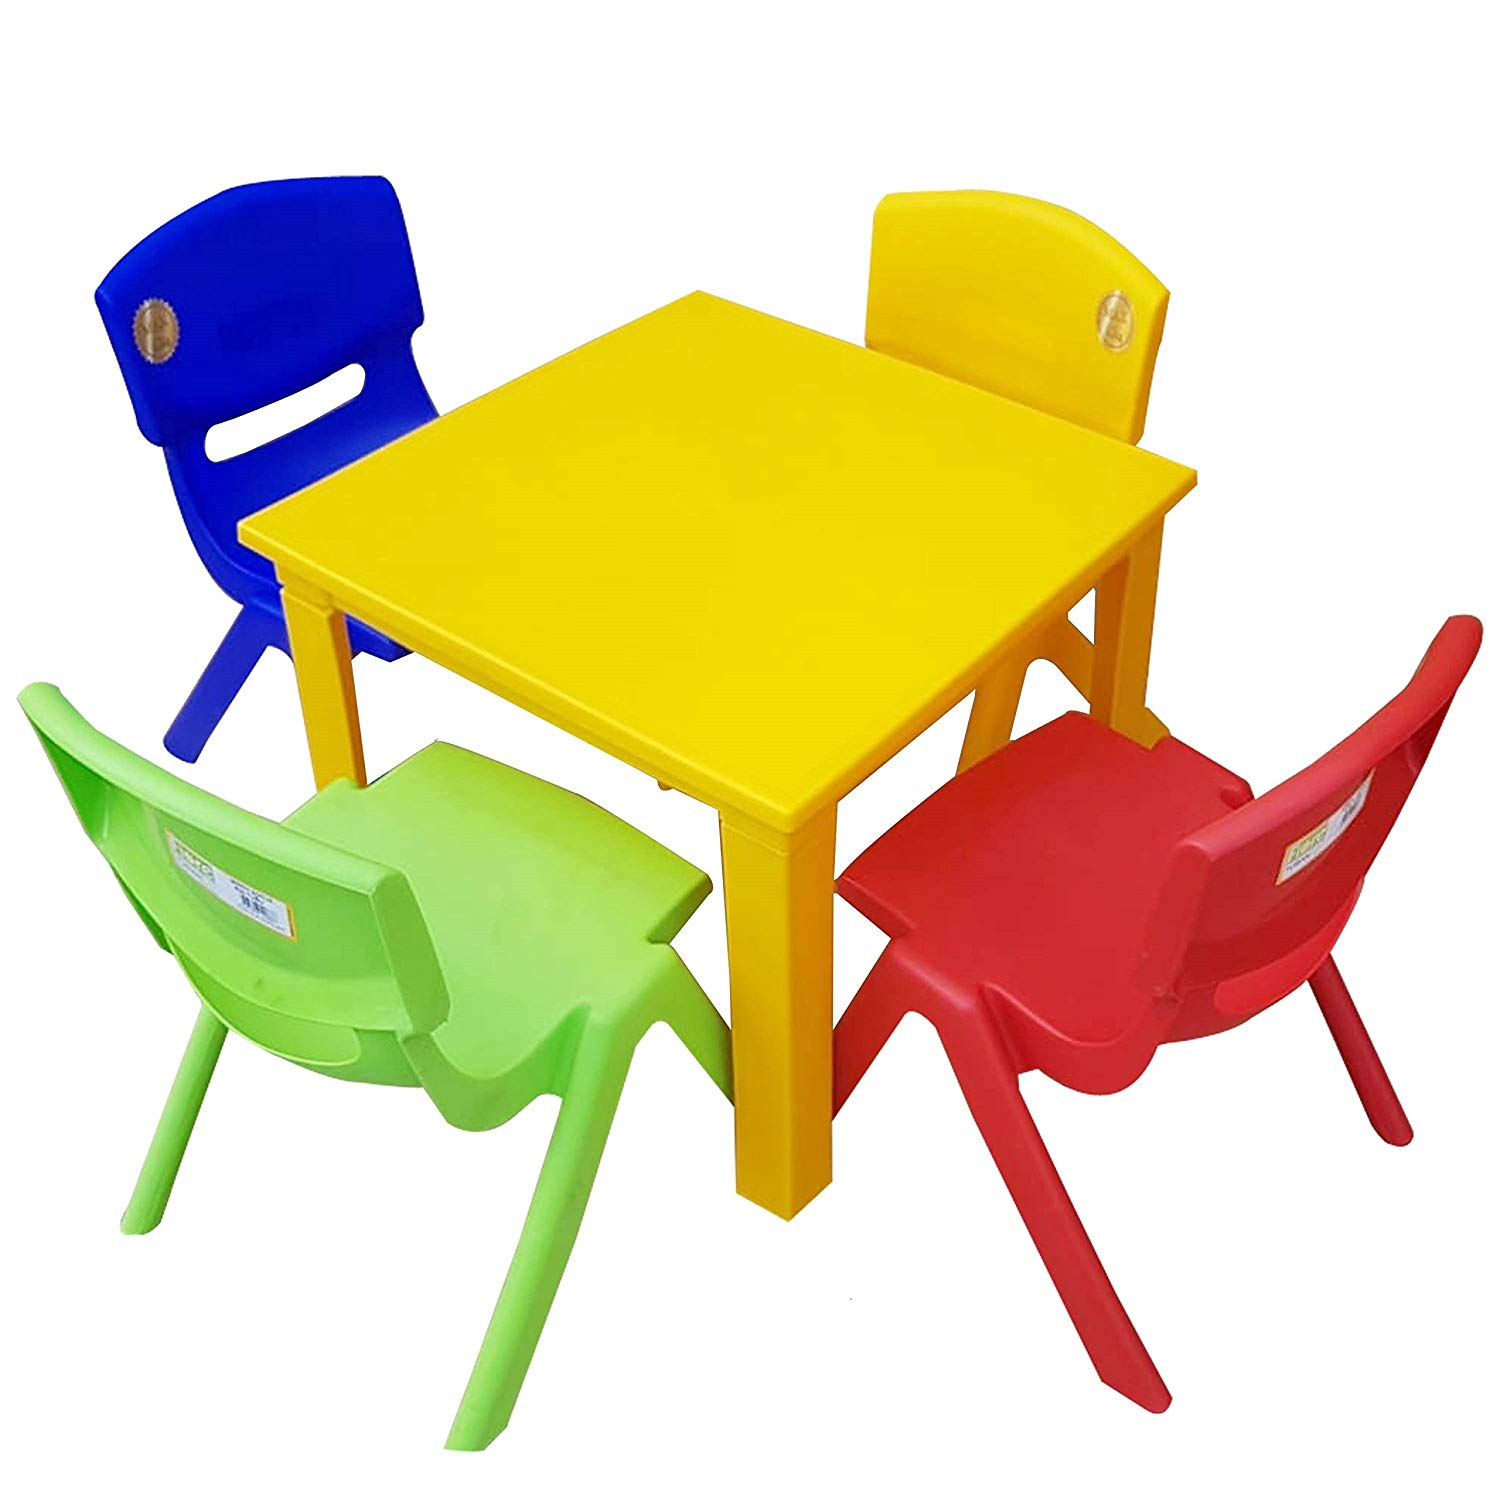 kids children plastic table strong folding high quality yellow outdoor accent suitable for side blue holiday presents small patio with chairs black and white chair lounge shaped